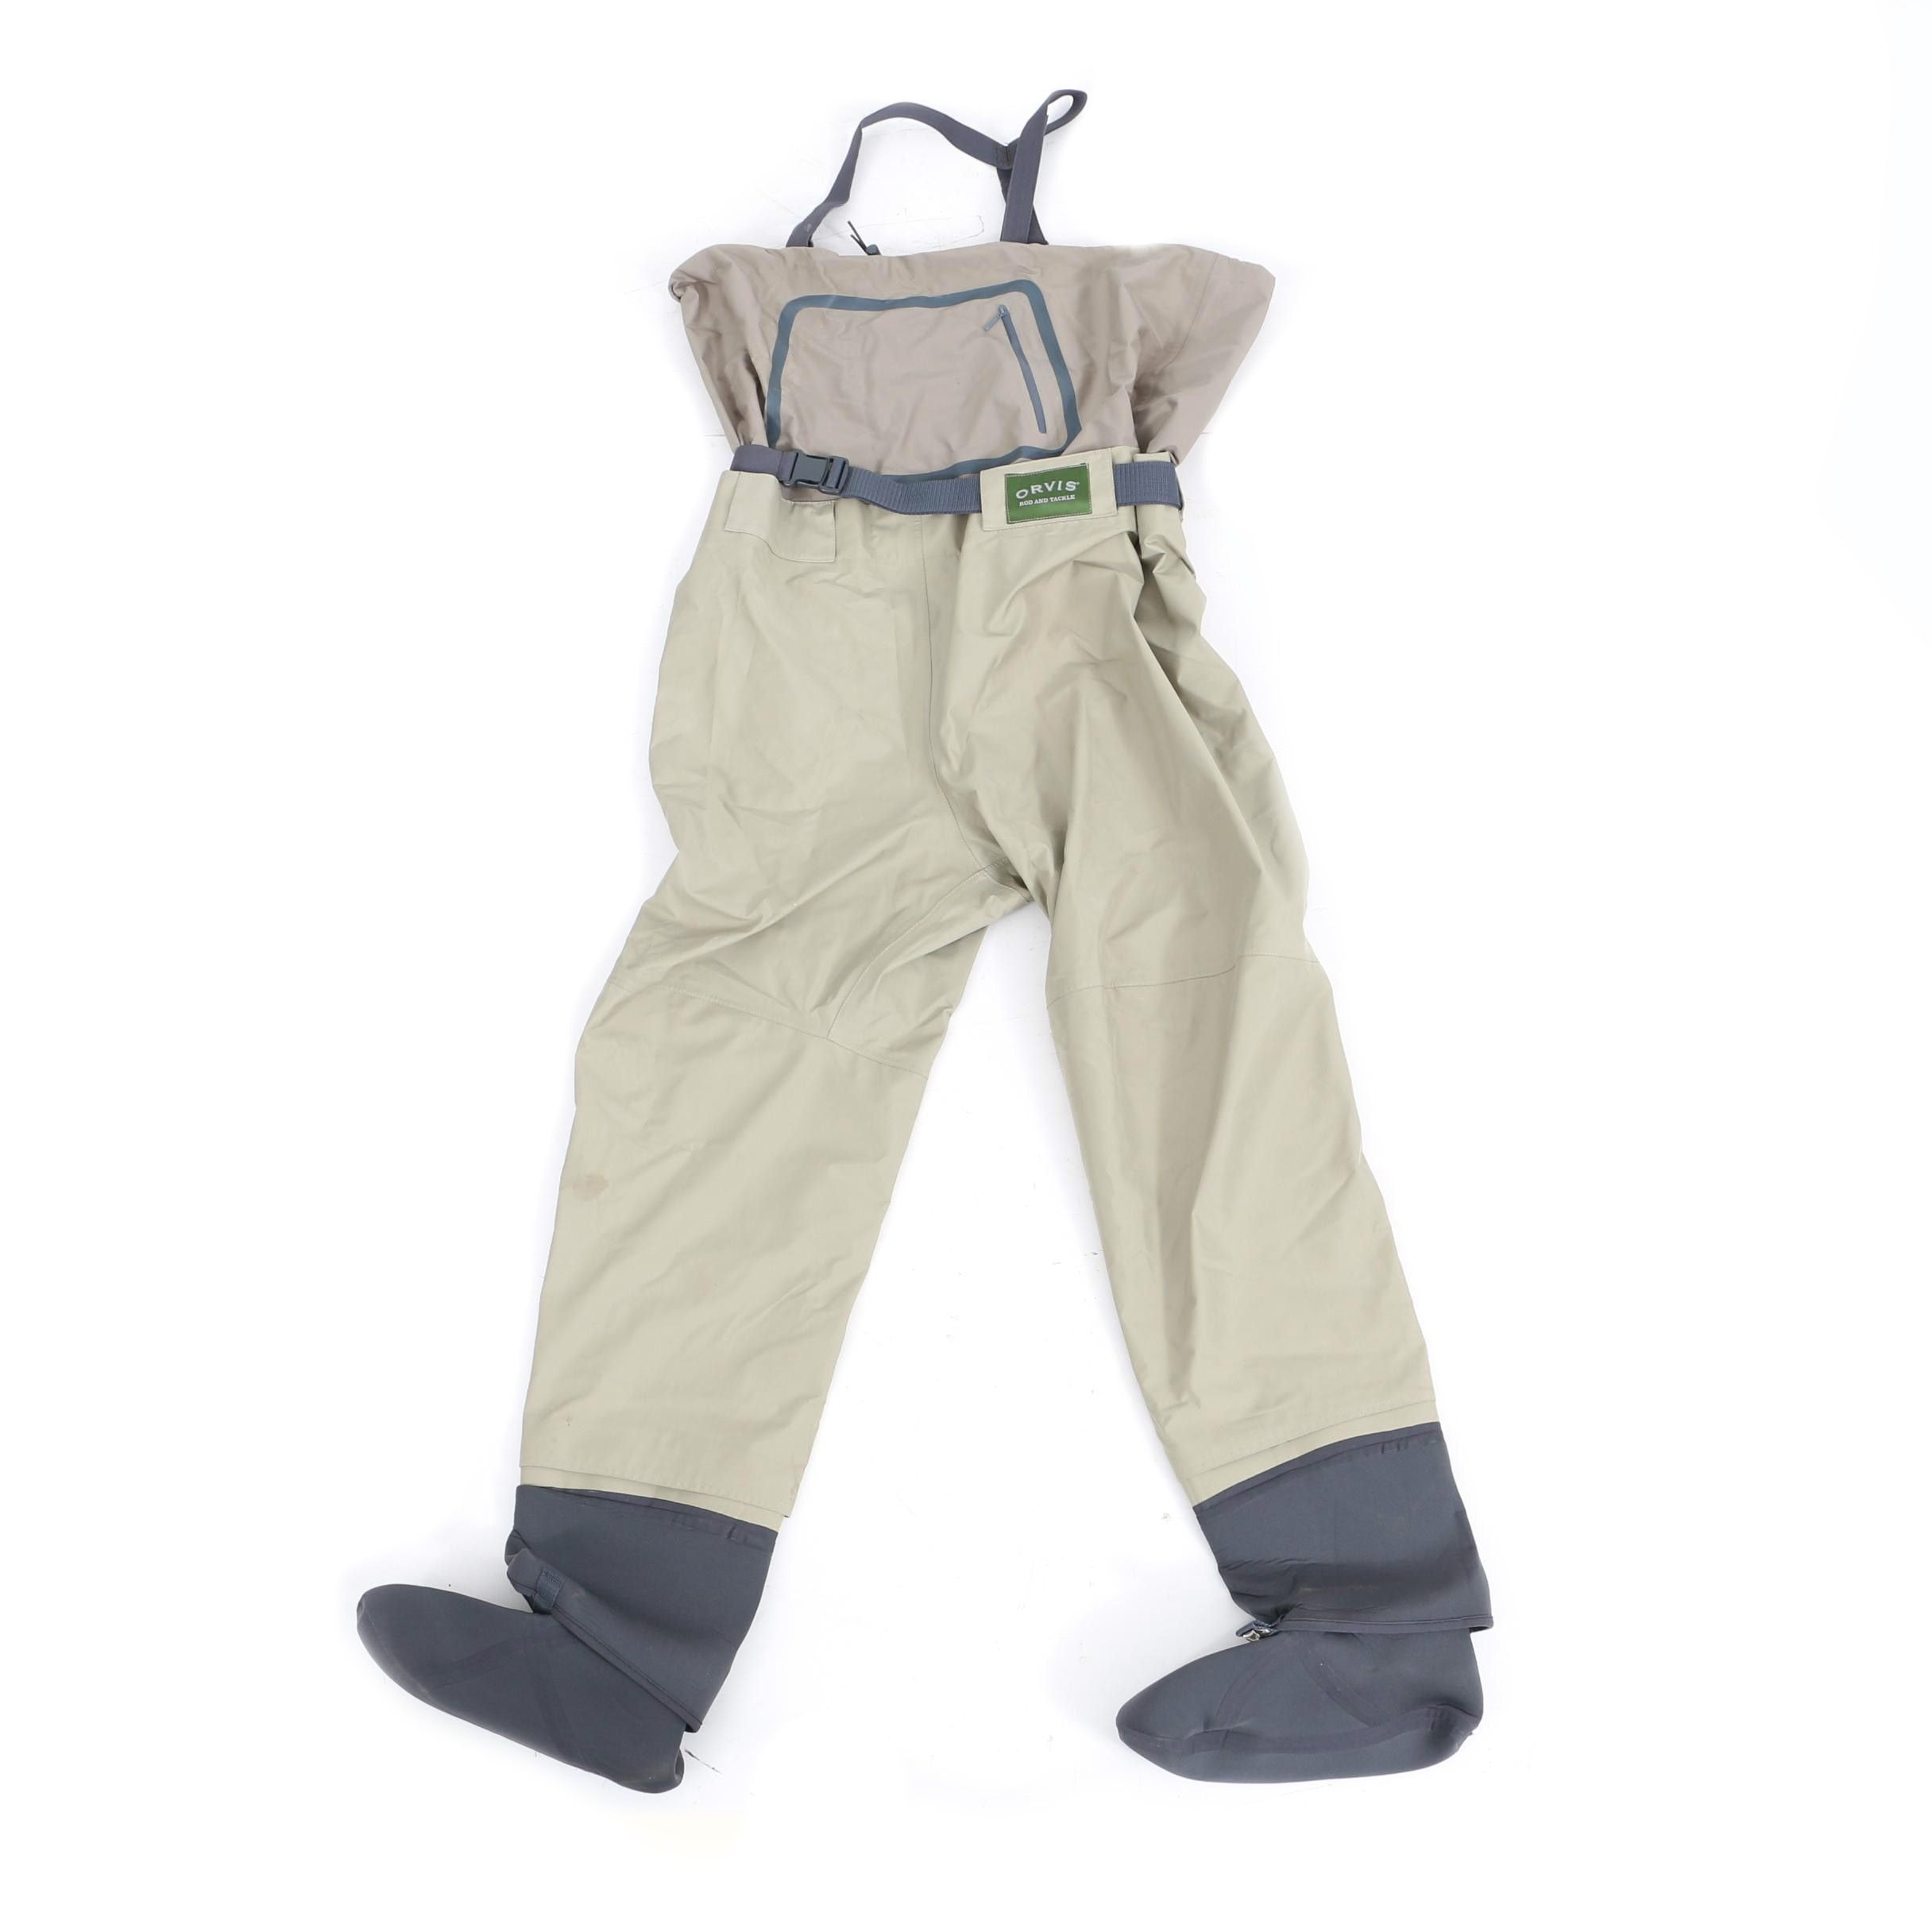 Orvis Size Large Wader Pants